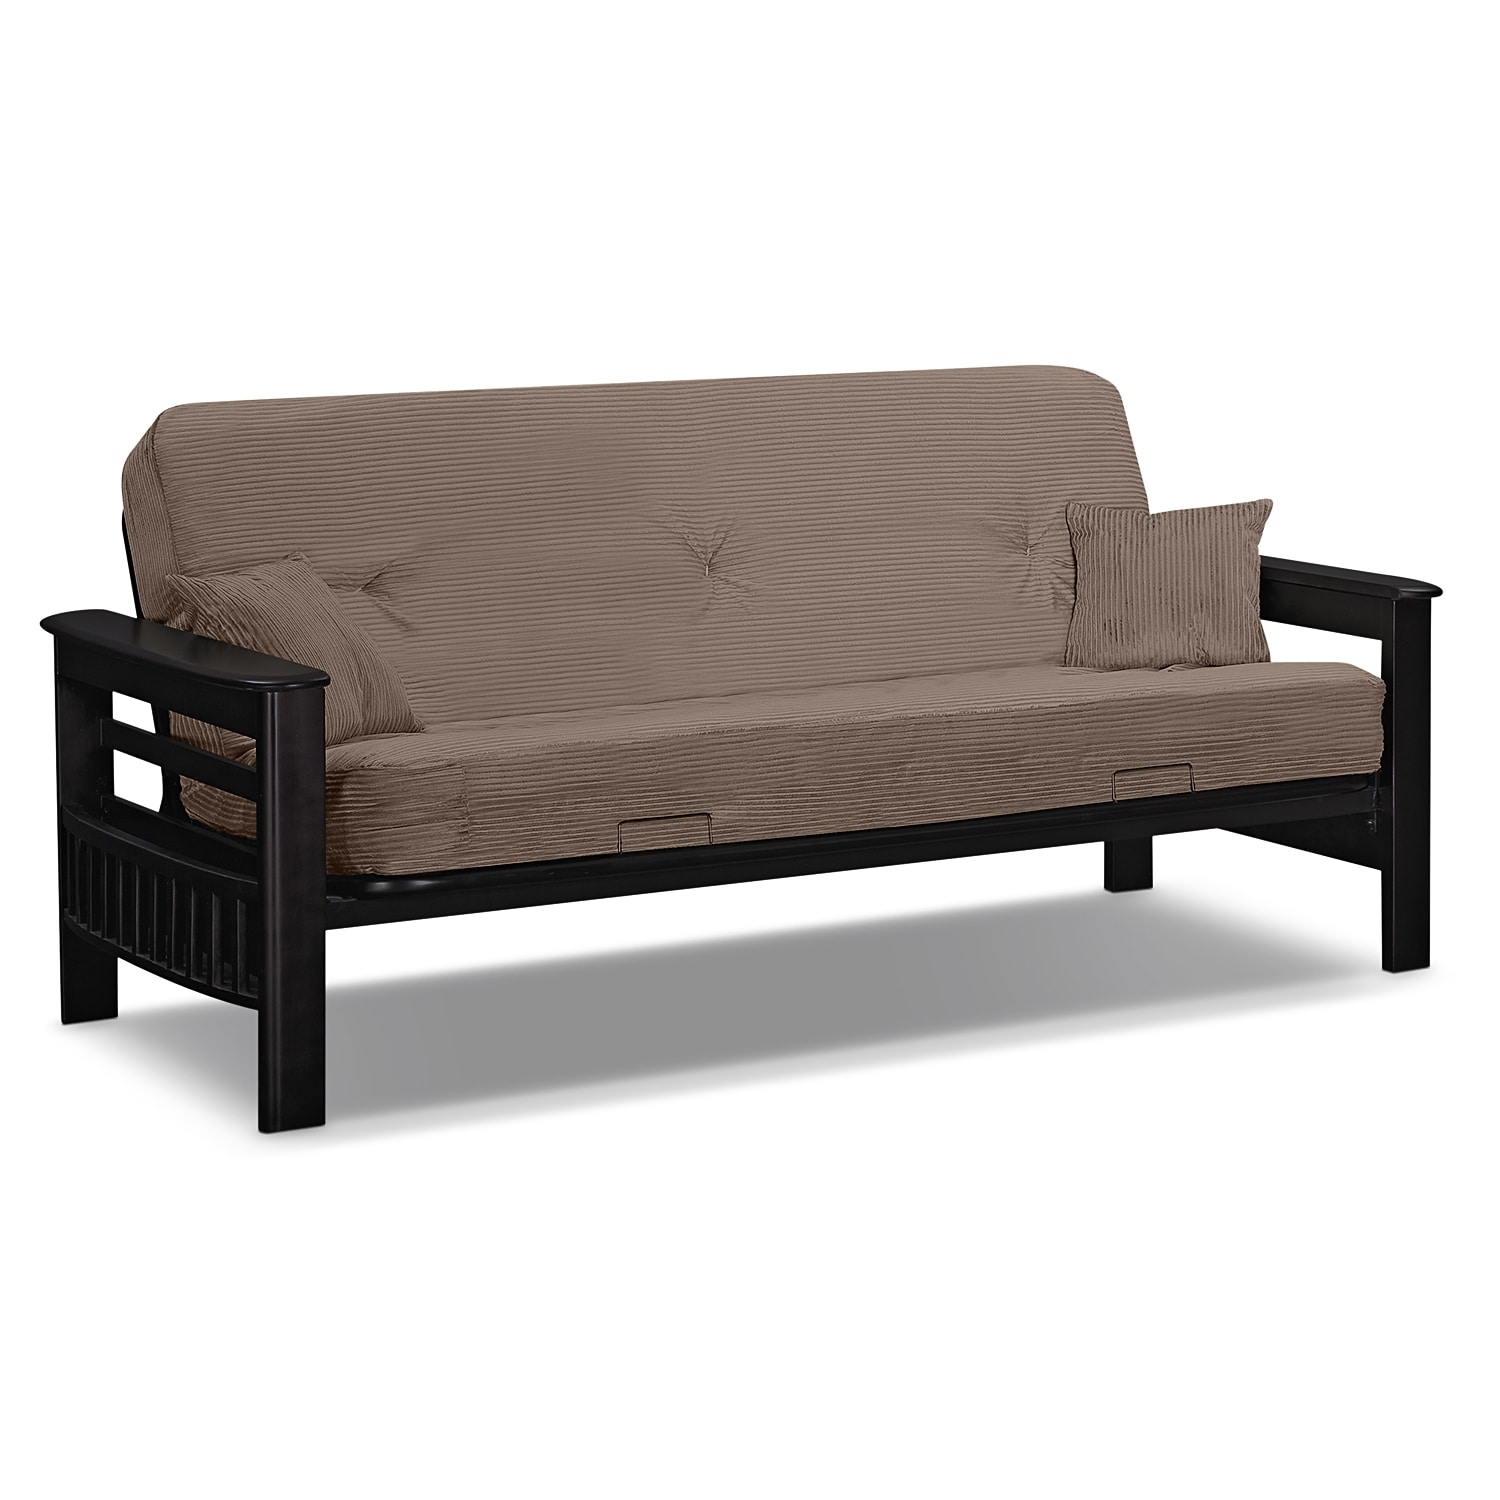 Daybeds & Futons Bedroom Furniture